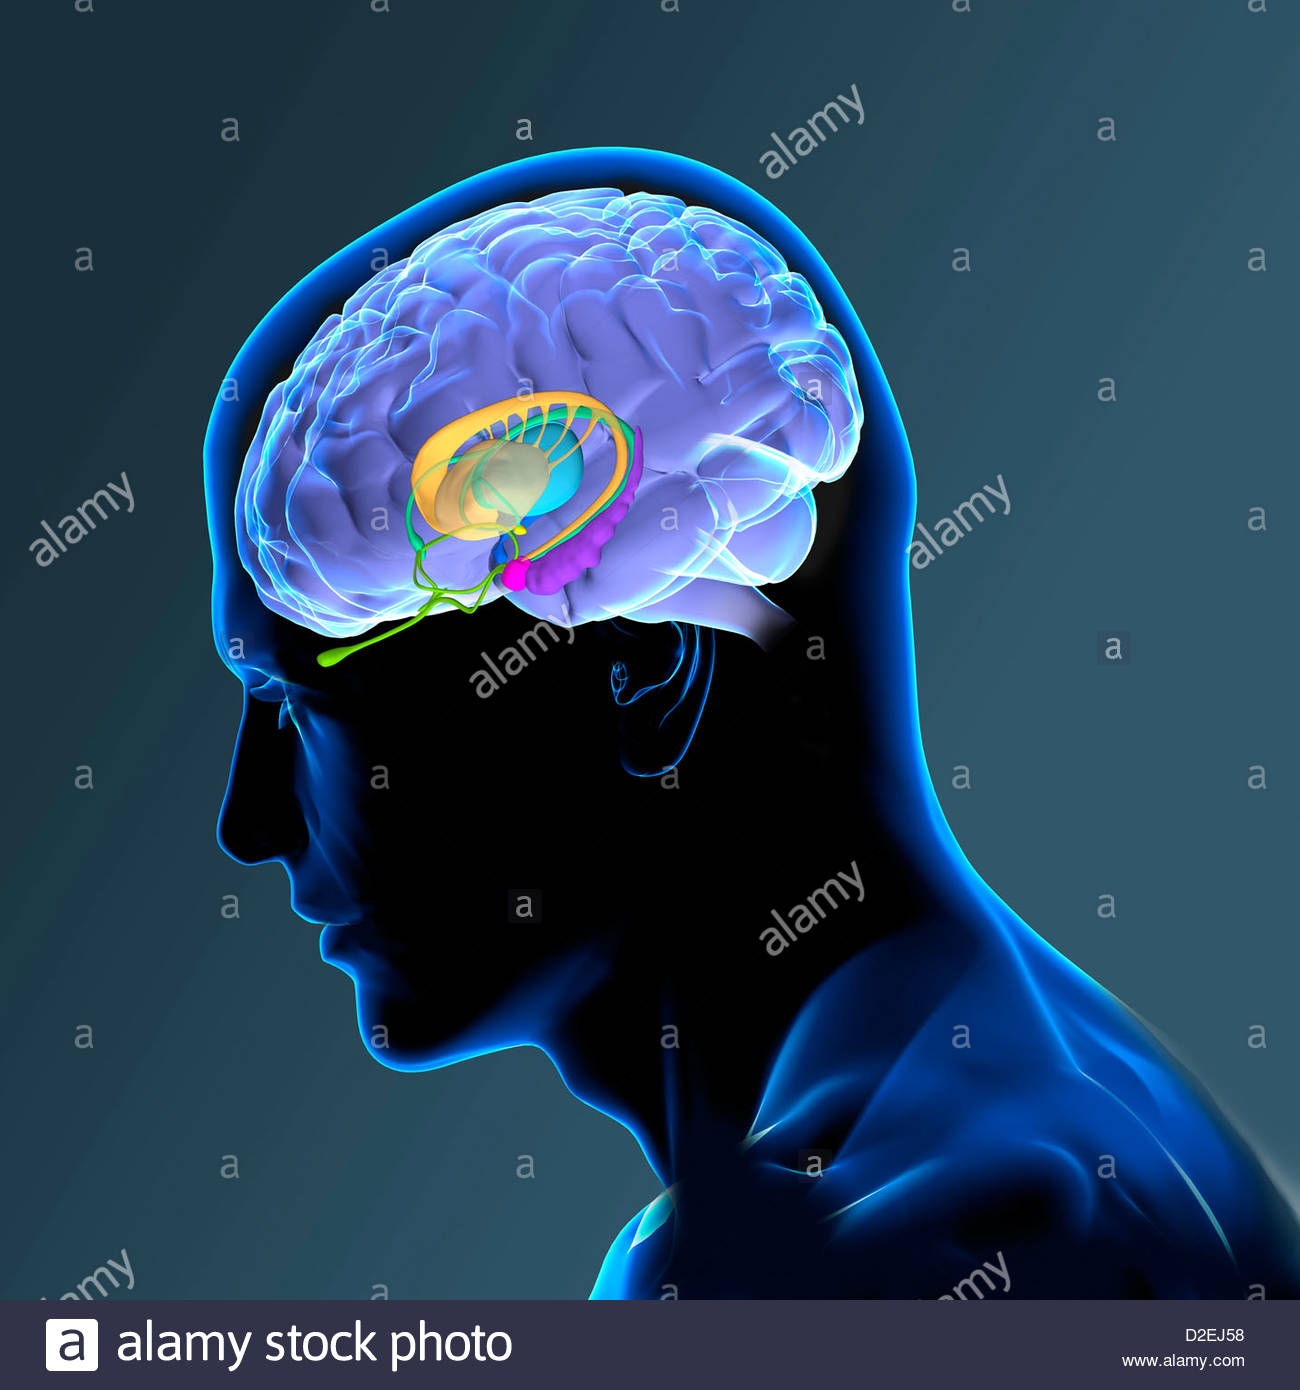 ANATOMY OF THE BRAIN Stock Photo